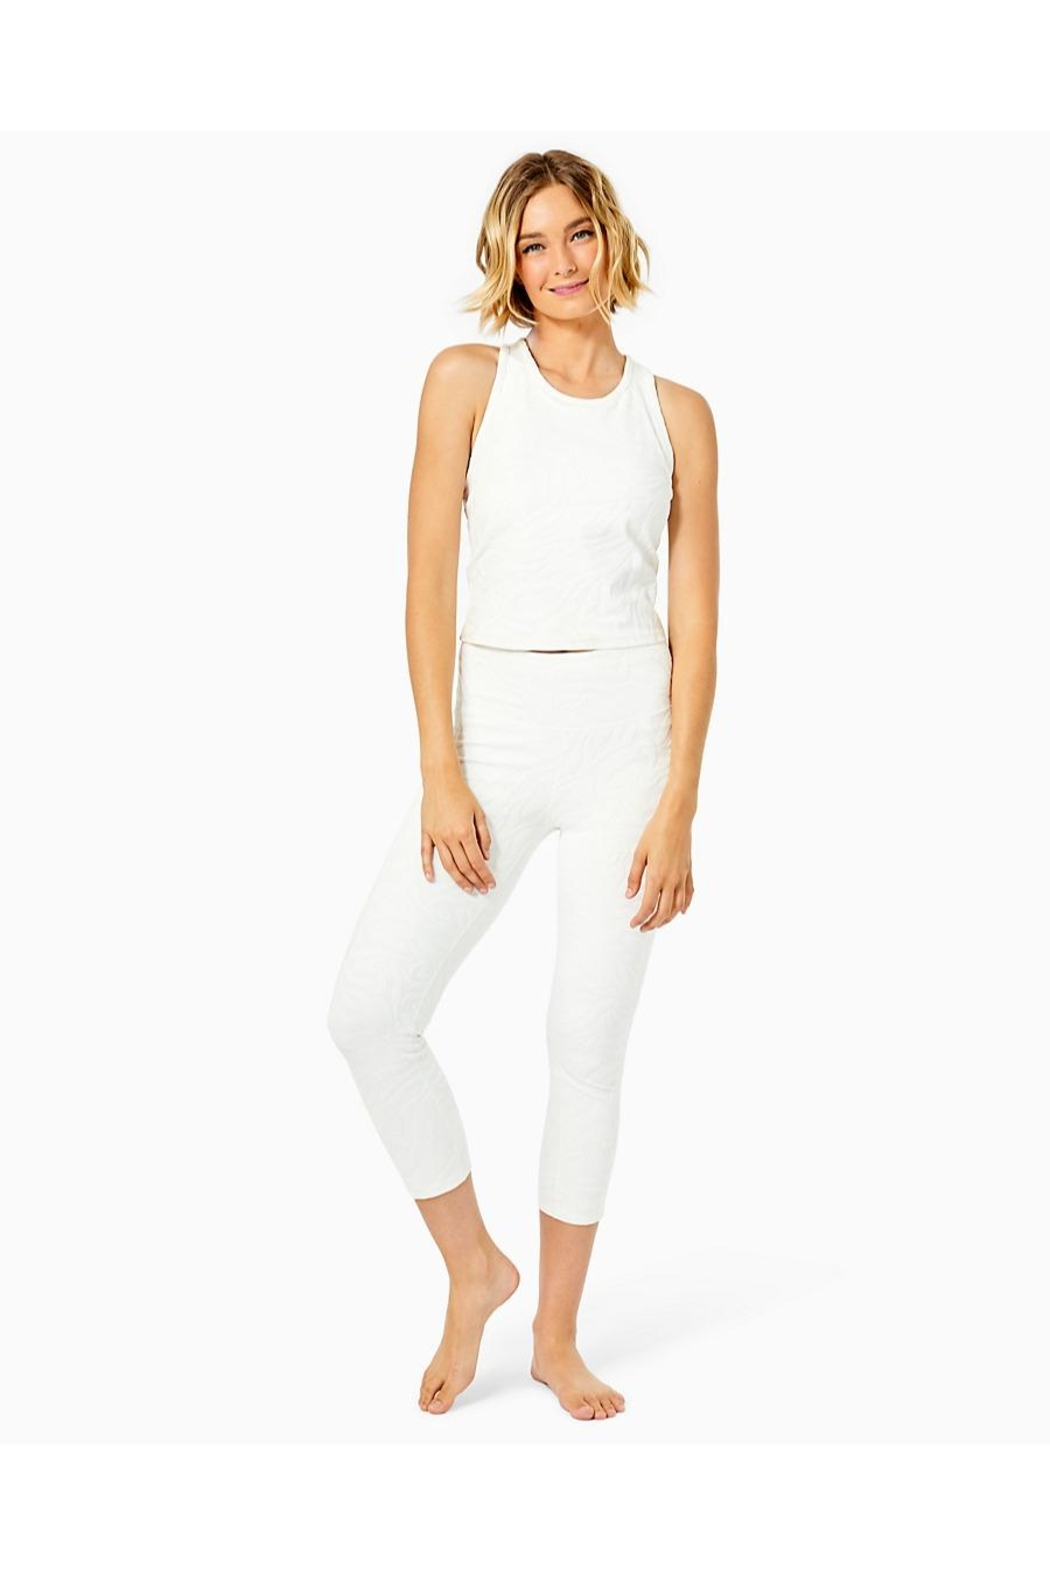 Lilly Pulitzer Luxletic Vanti Tank-Top - Back Cropped Image